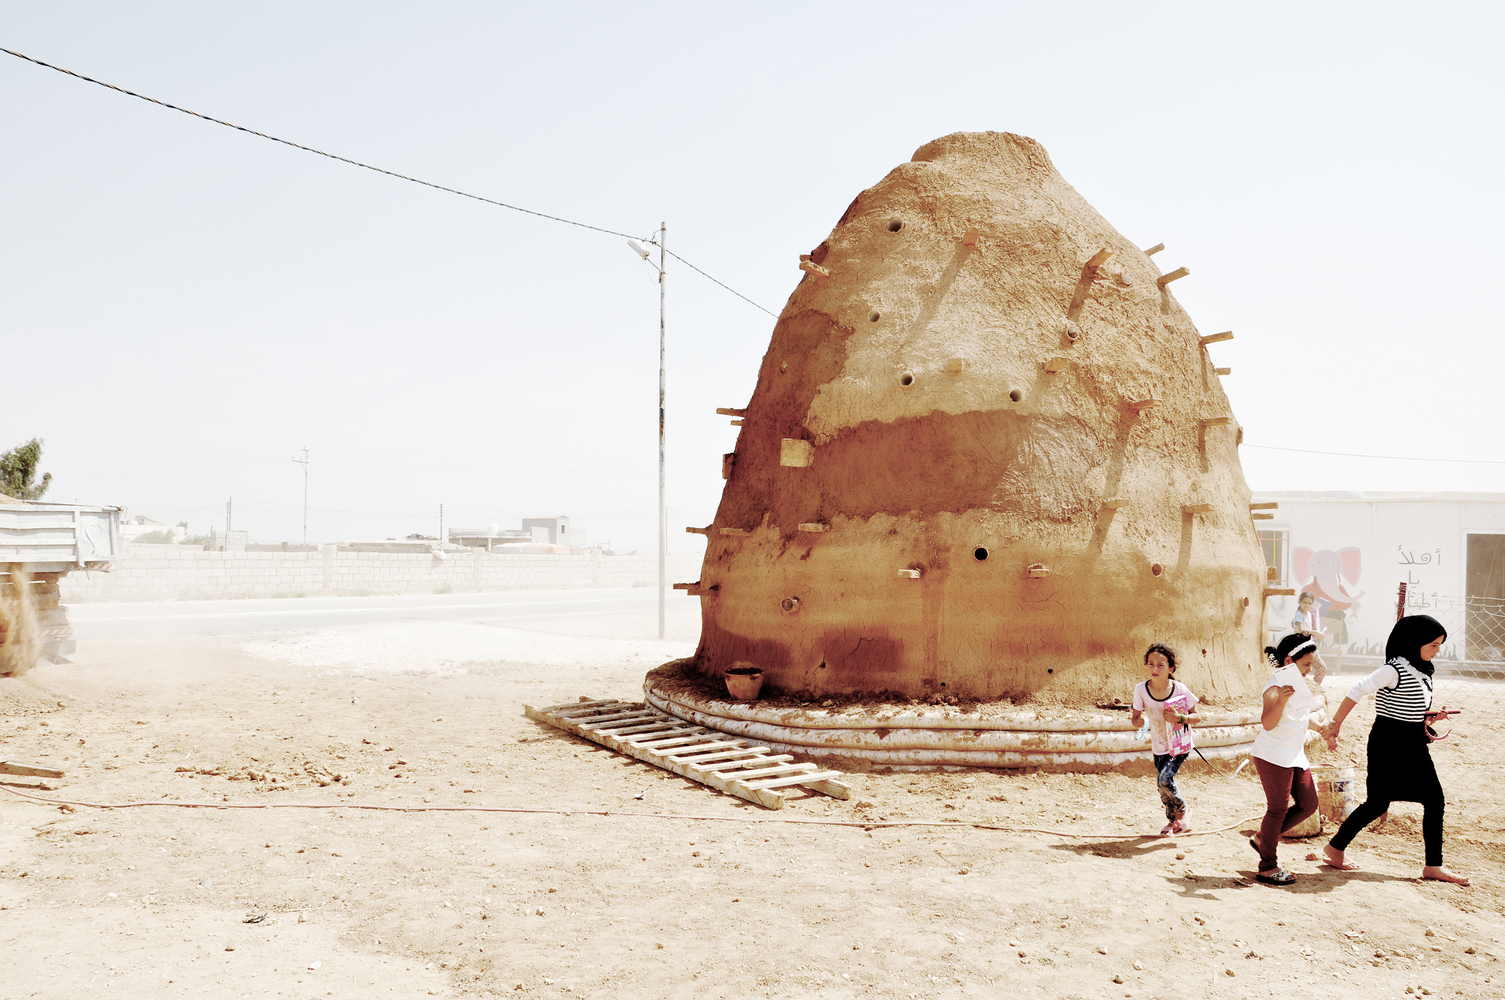 100 Classrooms for Refugee Children / Emergency Architecture & Human Rights